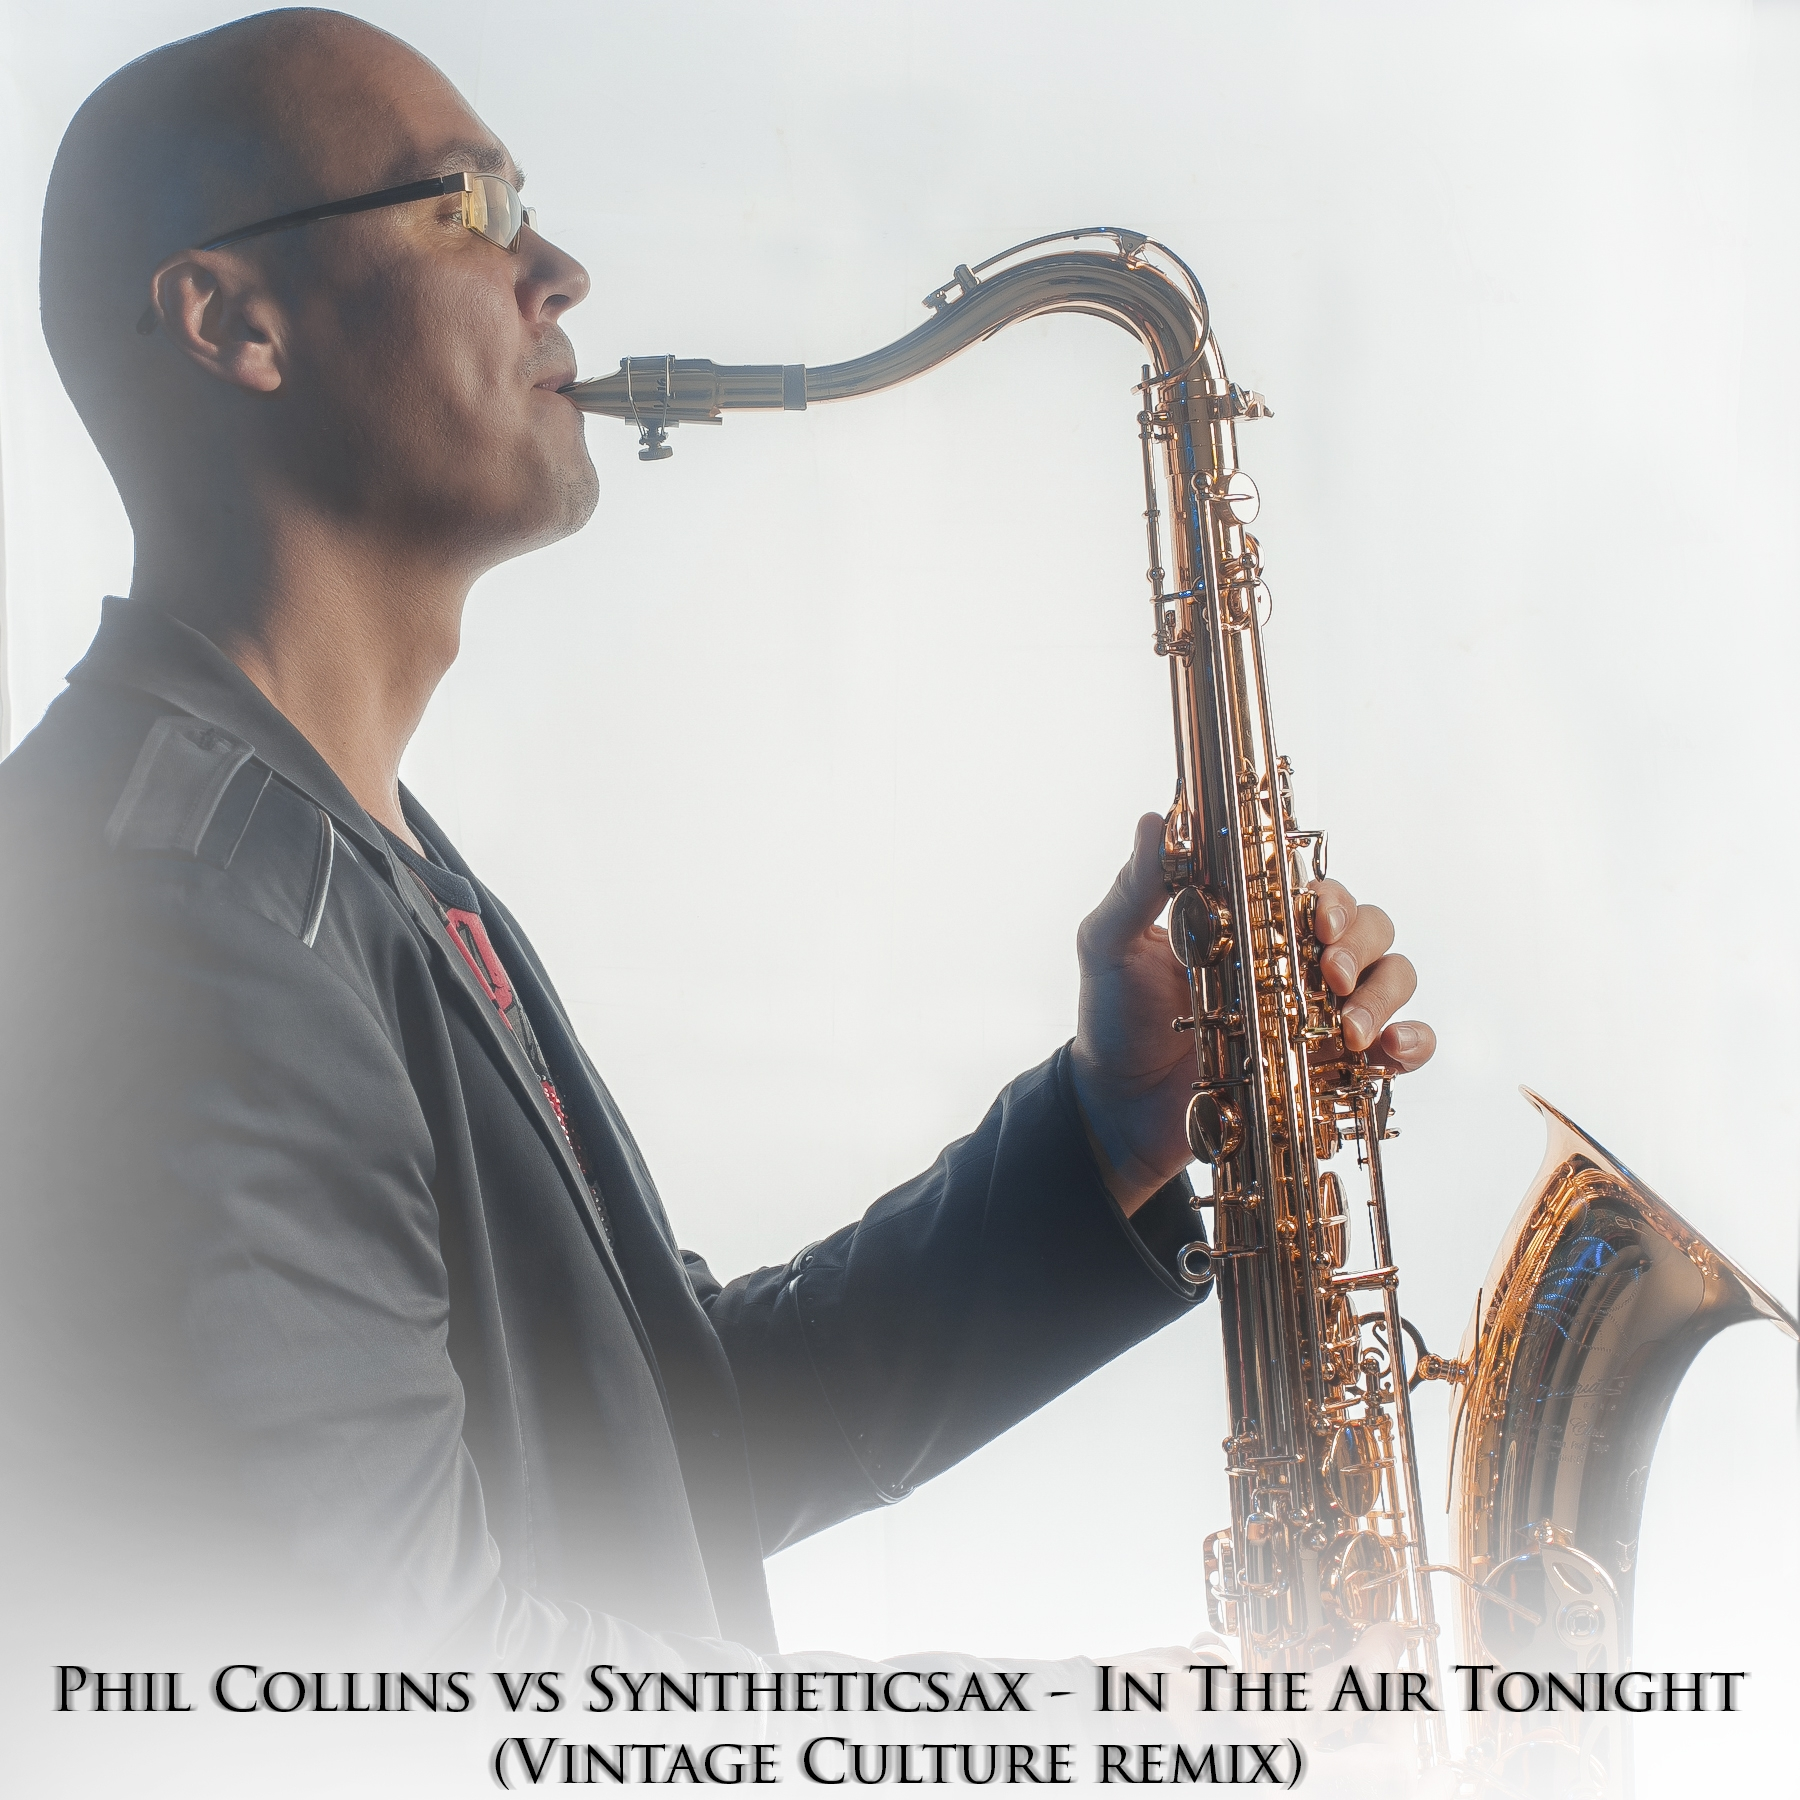 Phil Collins vs. Syntheticsax - In The Air Tonight (Vintage Culture Remix)